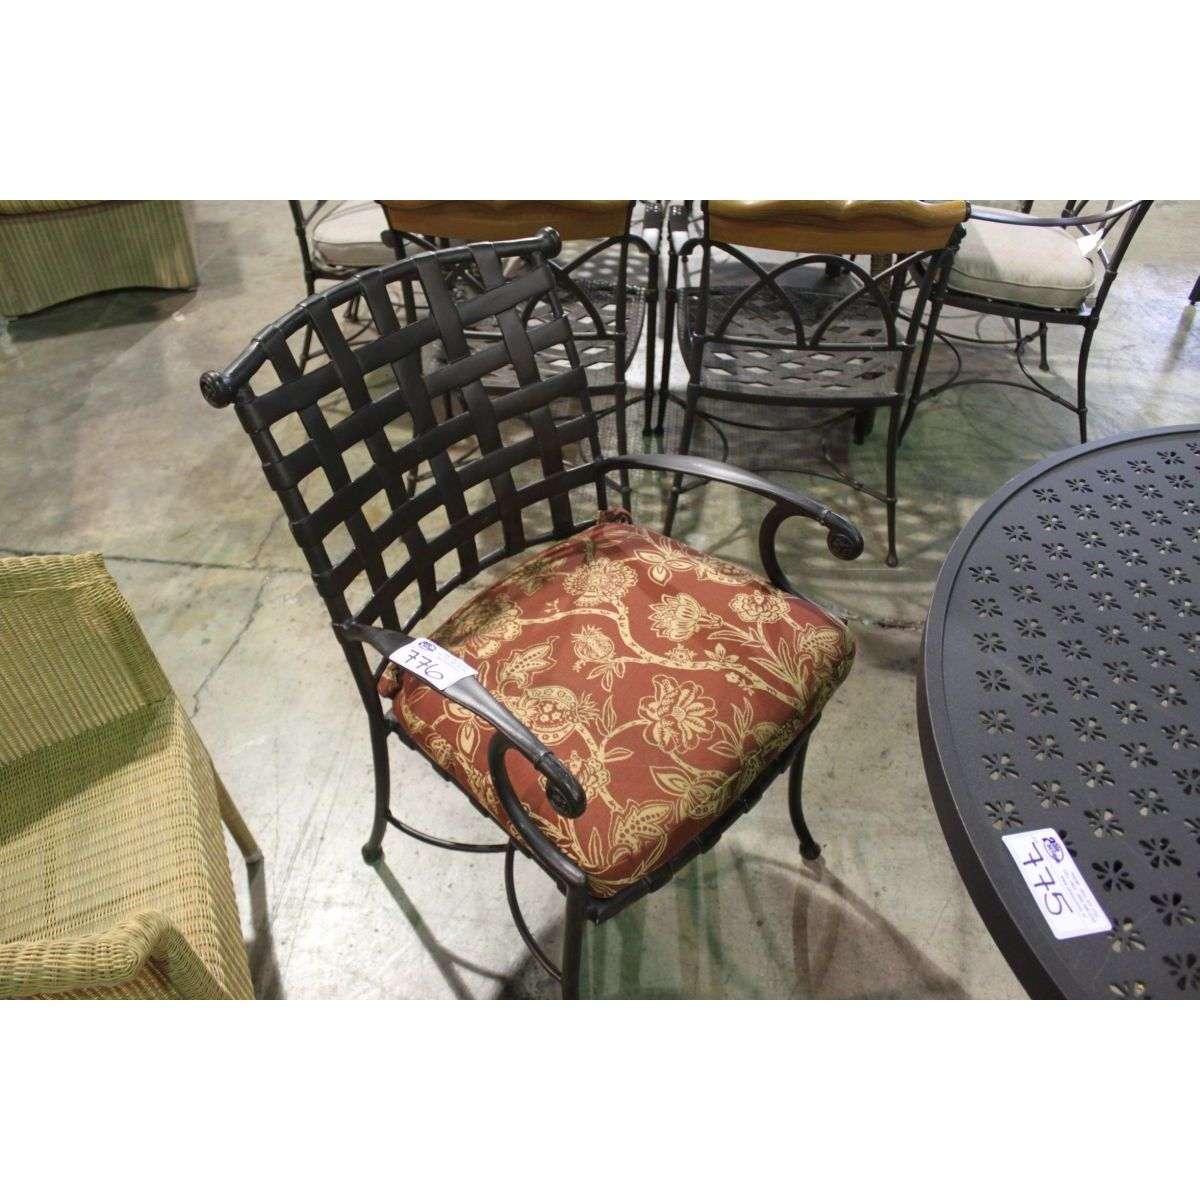 metal kitchen chair cushions vintage upholstered rocking weave back modeled dining with cushion able